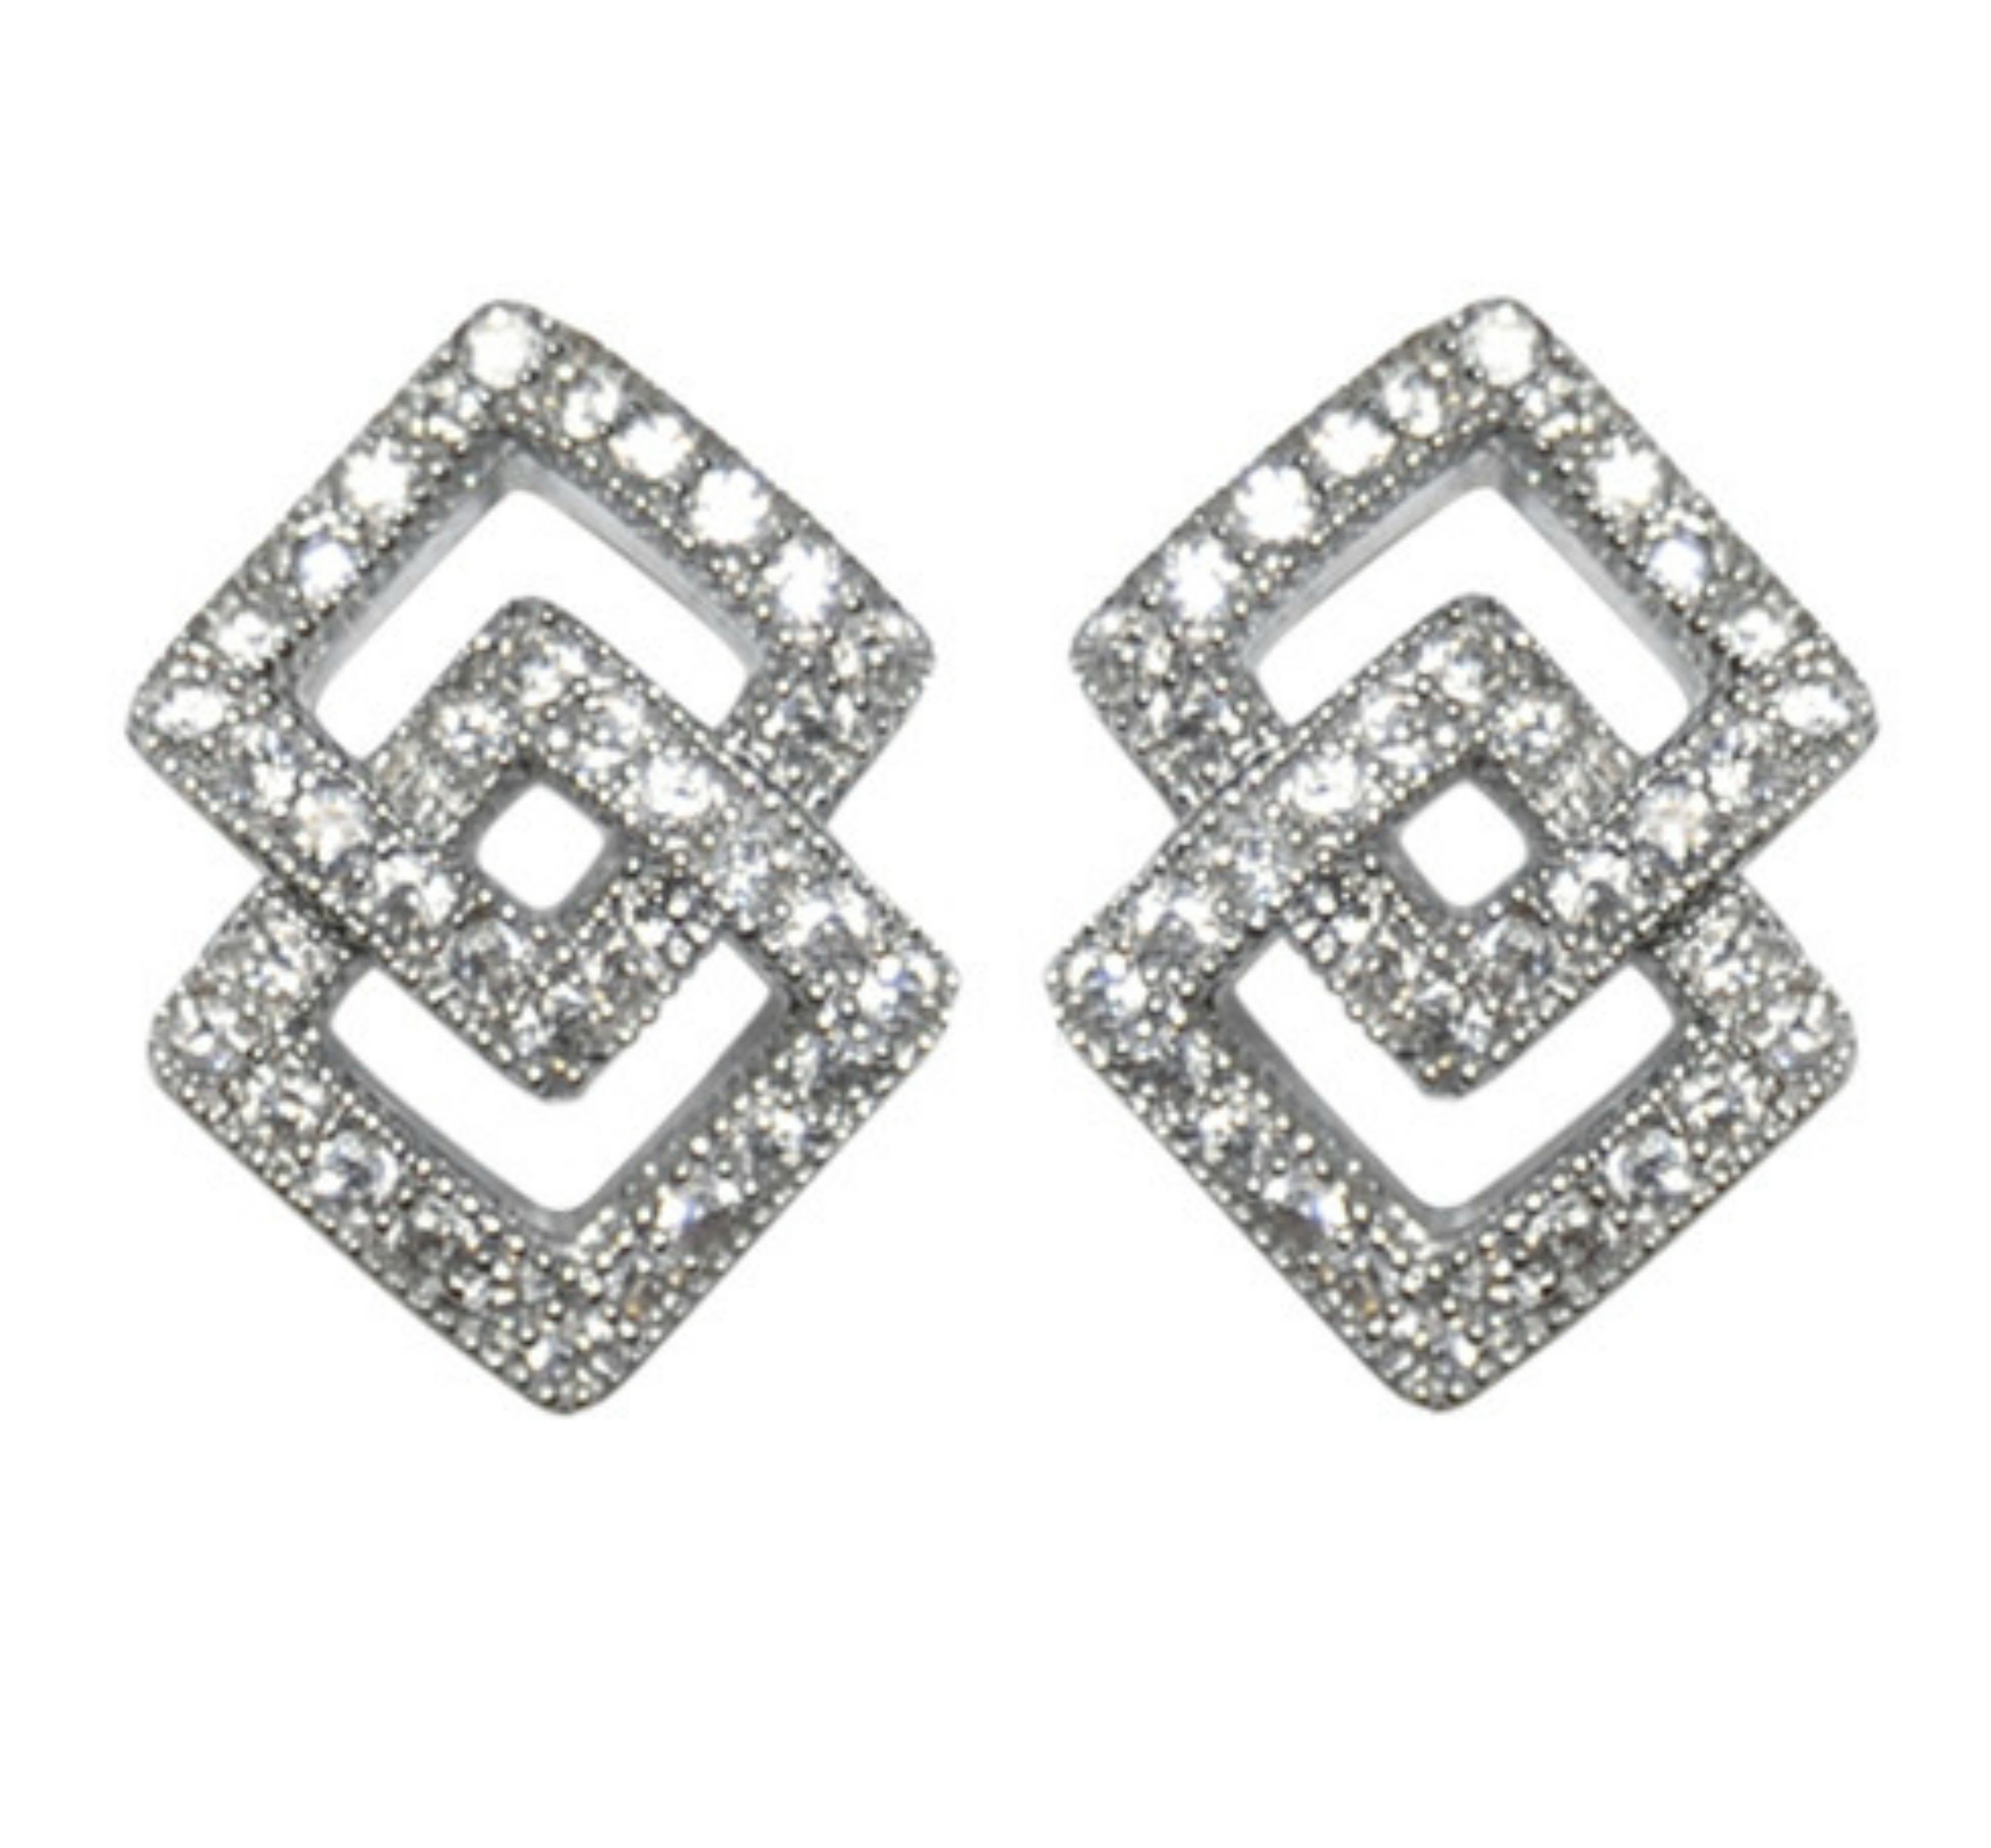 Hedy Double Square Stud Earrings Cubic Zirconia Silver